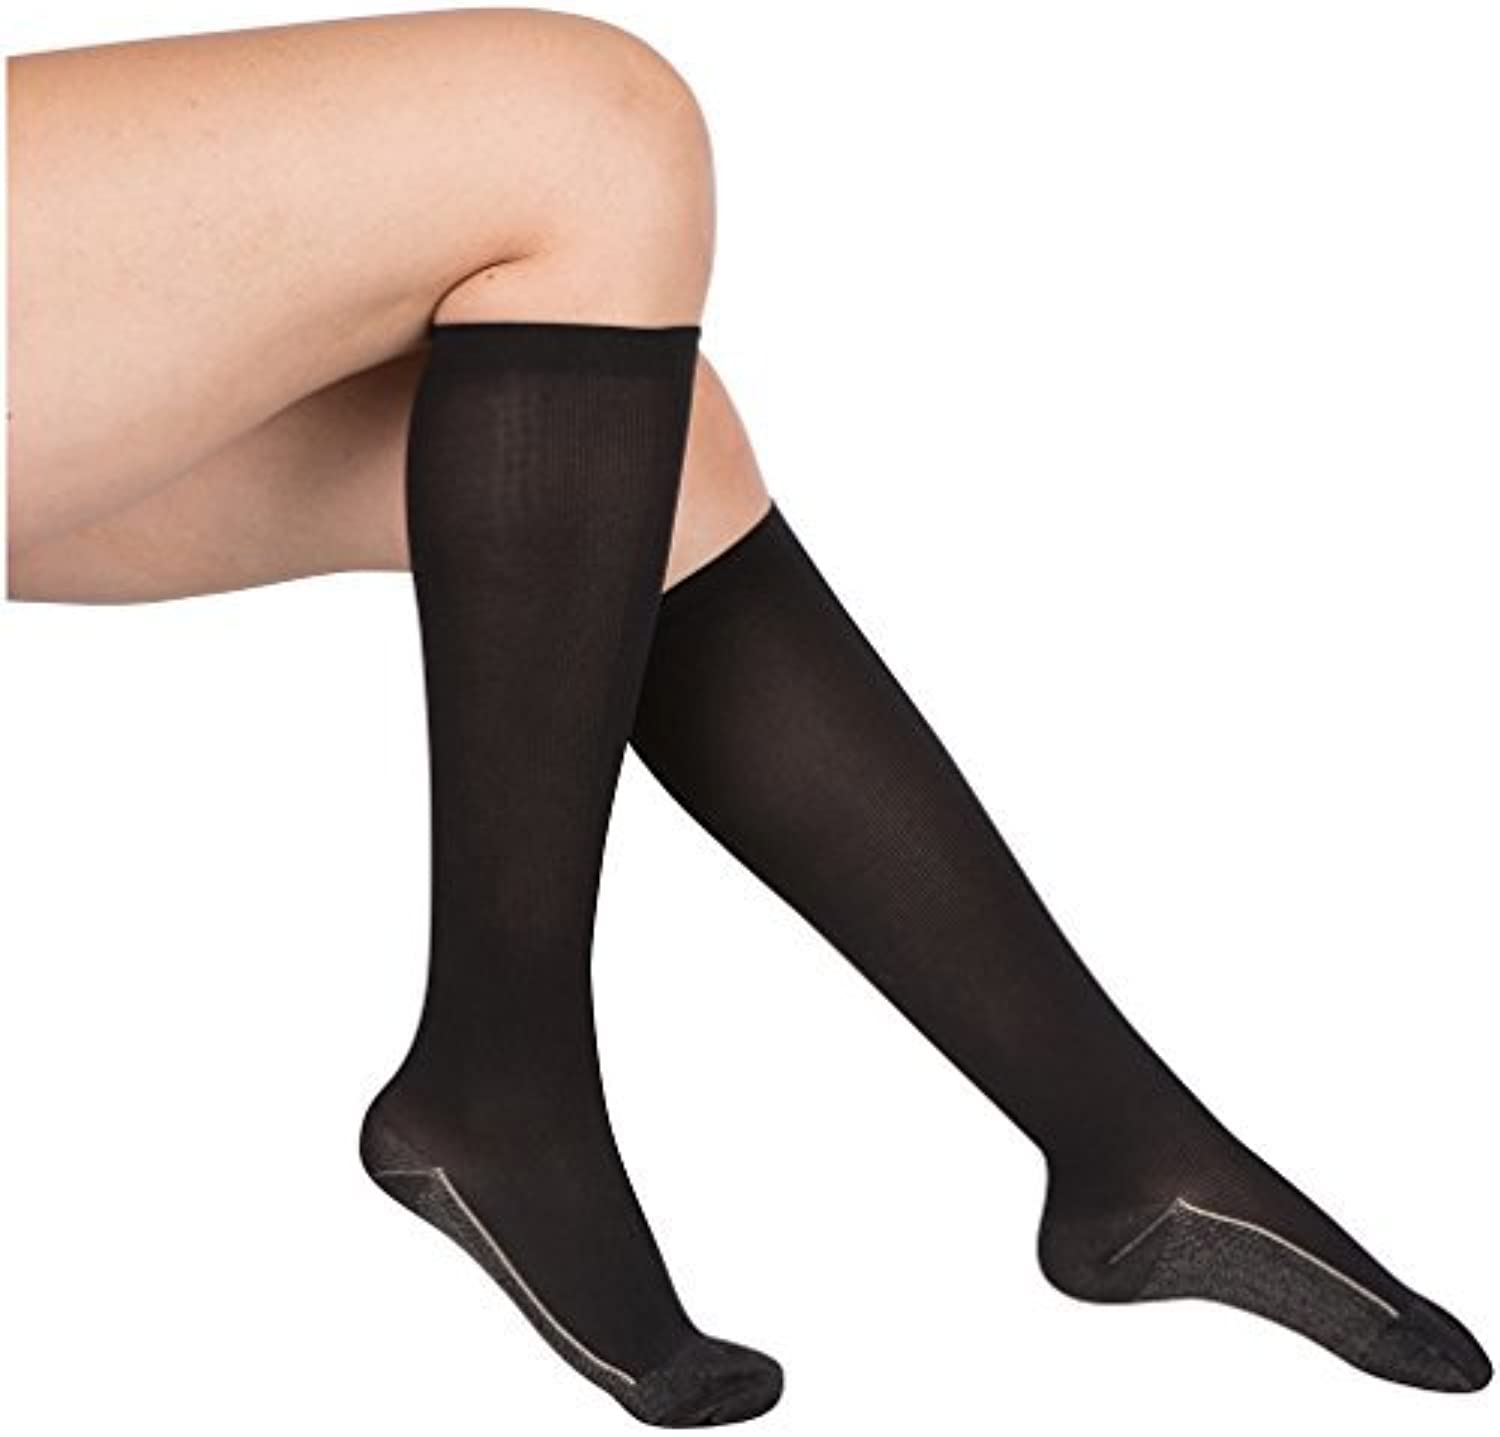 2 Pair EvoNation Women's Copper USA Made Graduated Compression Socks 20-30 mmHg Firm Pressure Medical Quality Knee High Orthopedic Support Stockings Circulation Hose (XL, Black)